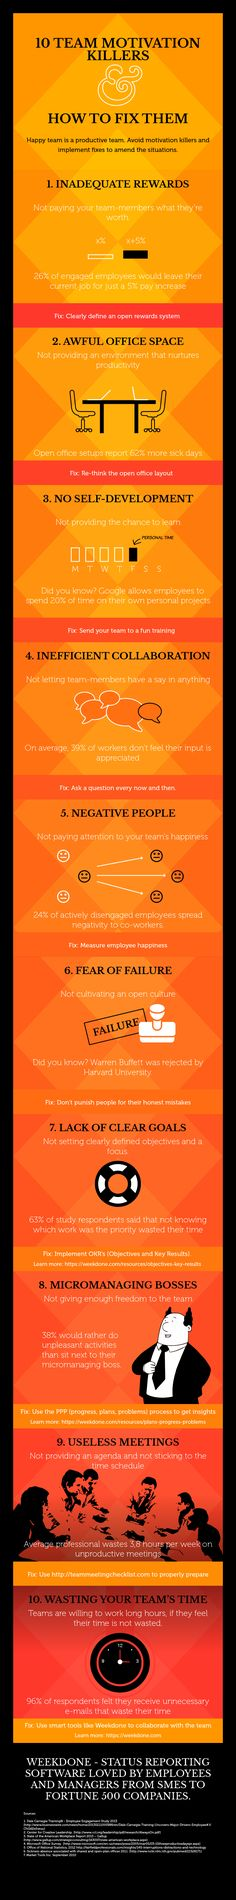 Infographic That Will Make You a Better Boss An Infographic Every Boss Should Read: 10 Team Motivation Killers and How To Fix Them.An Infographic Every Boss Should Read: 10 Team Motivation Killers and How To Fix Them. It Management, Business Management, Info Board, Team Motivation, Employee Motivation, Motivation Quotes, Business Motivation, Work Quotes, How To Motivate Employees